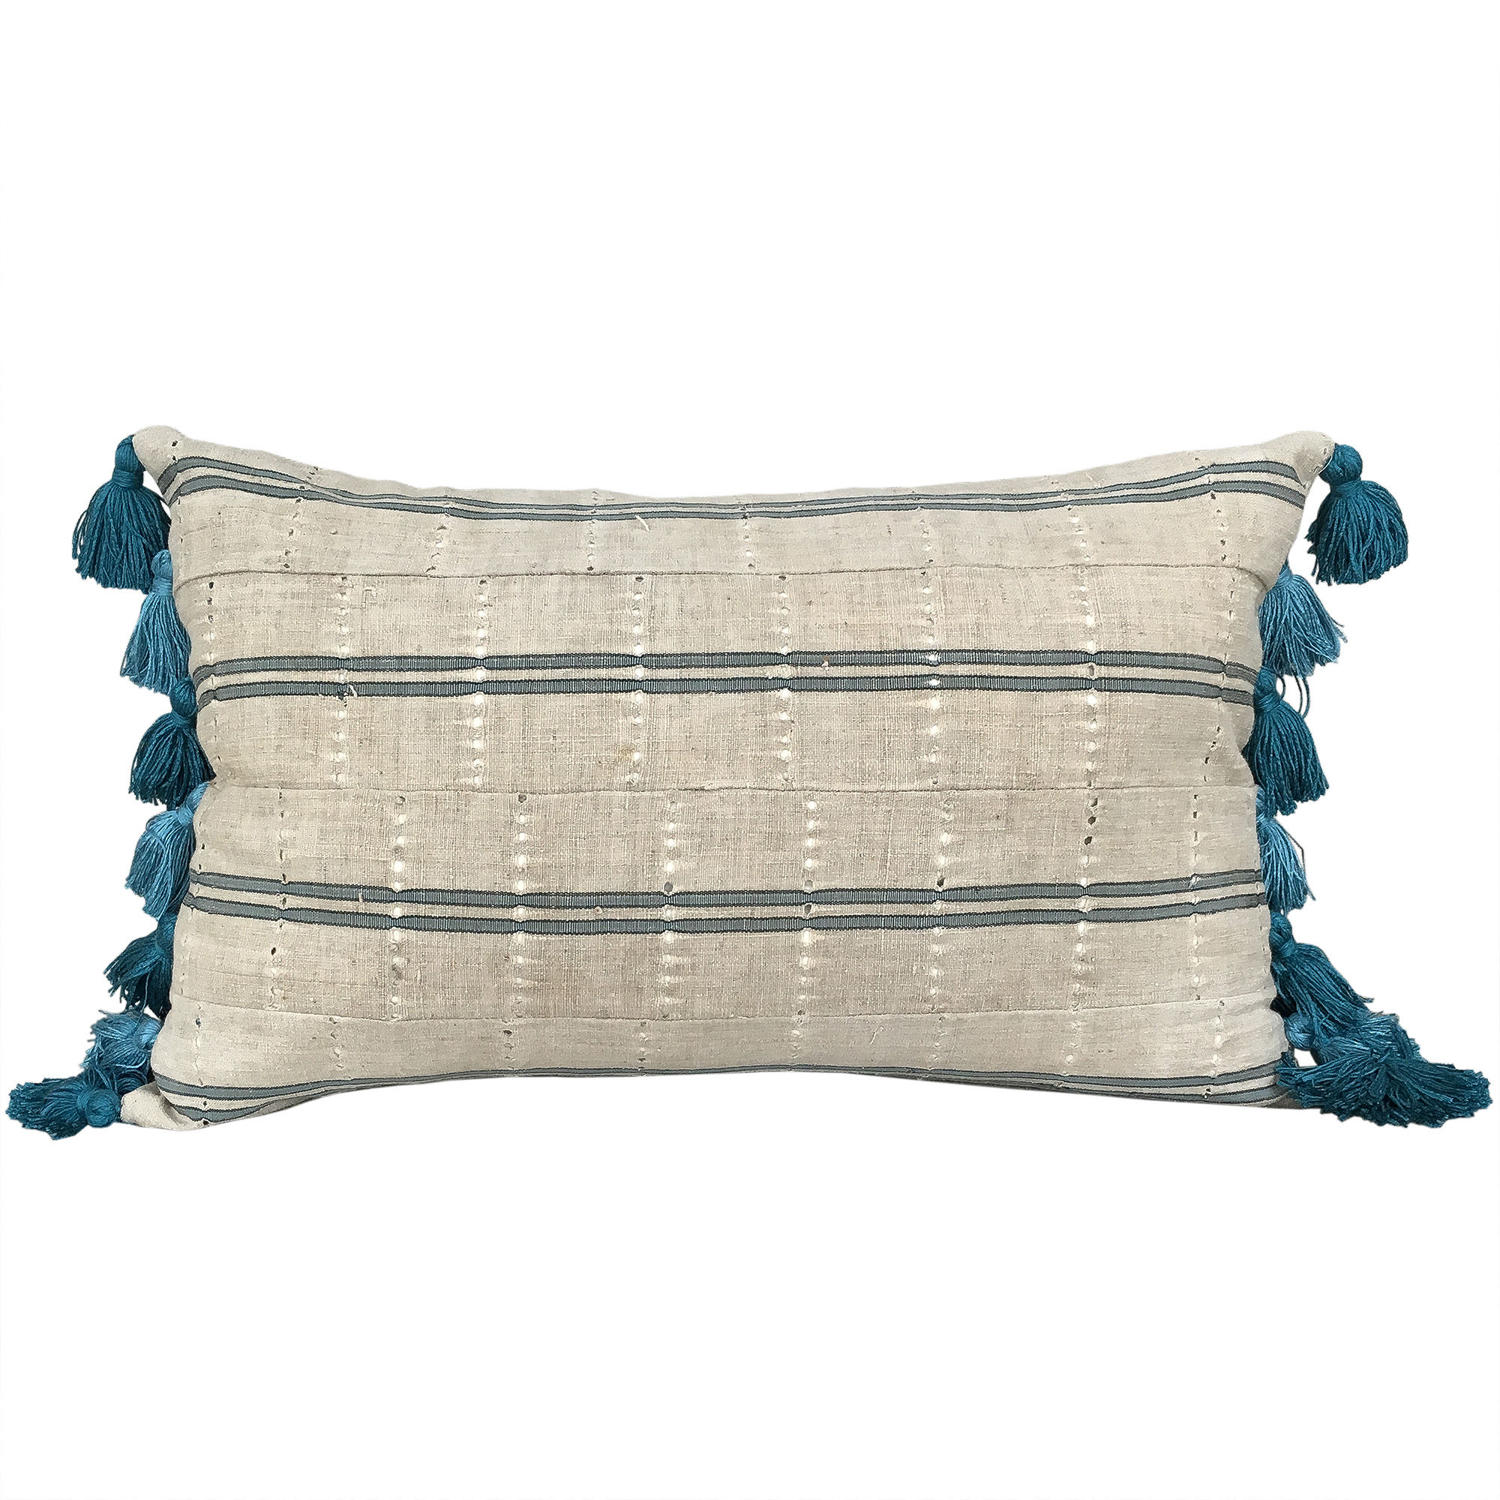 Yoruba Cushions with Bamboo Tassels